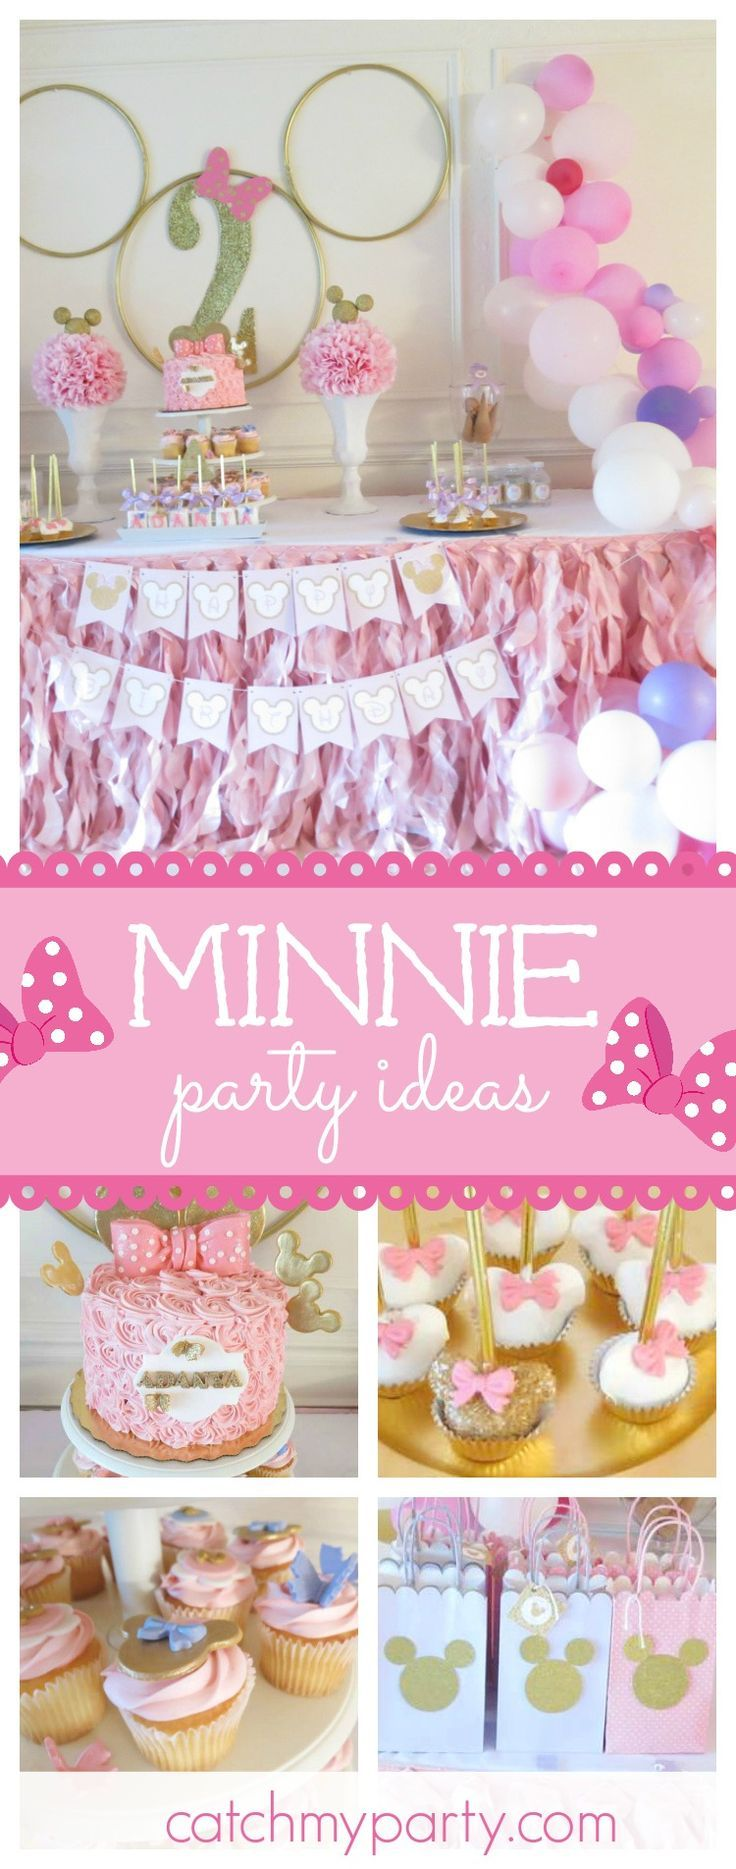 Birthday table decorations for girls - Minnie Mouse Birthday Minnie 2nd Birthday Party